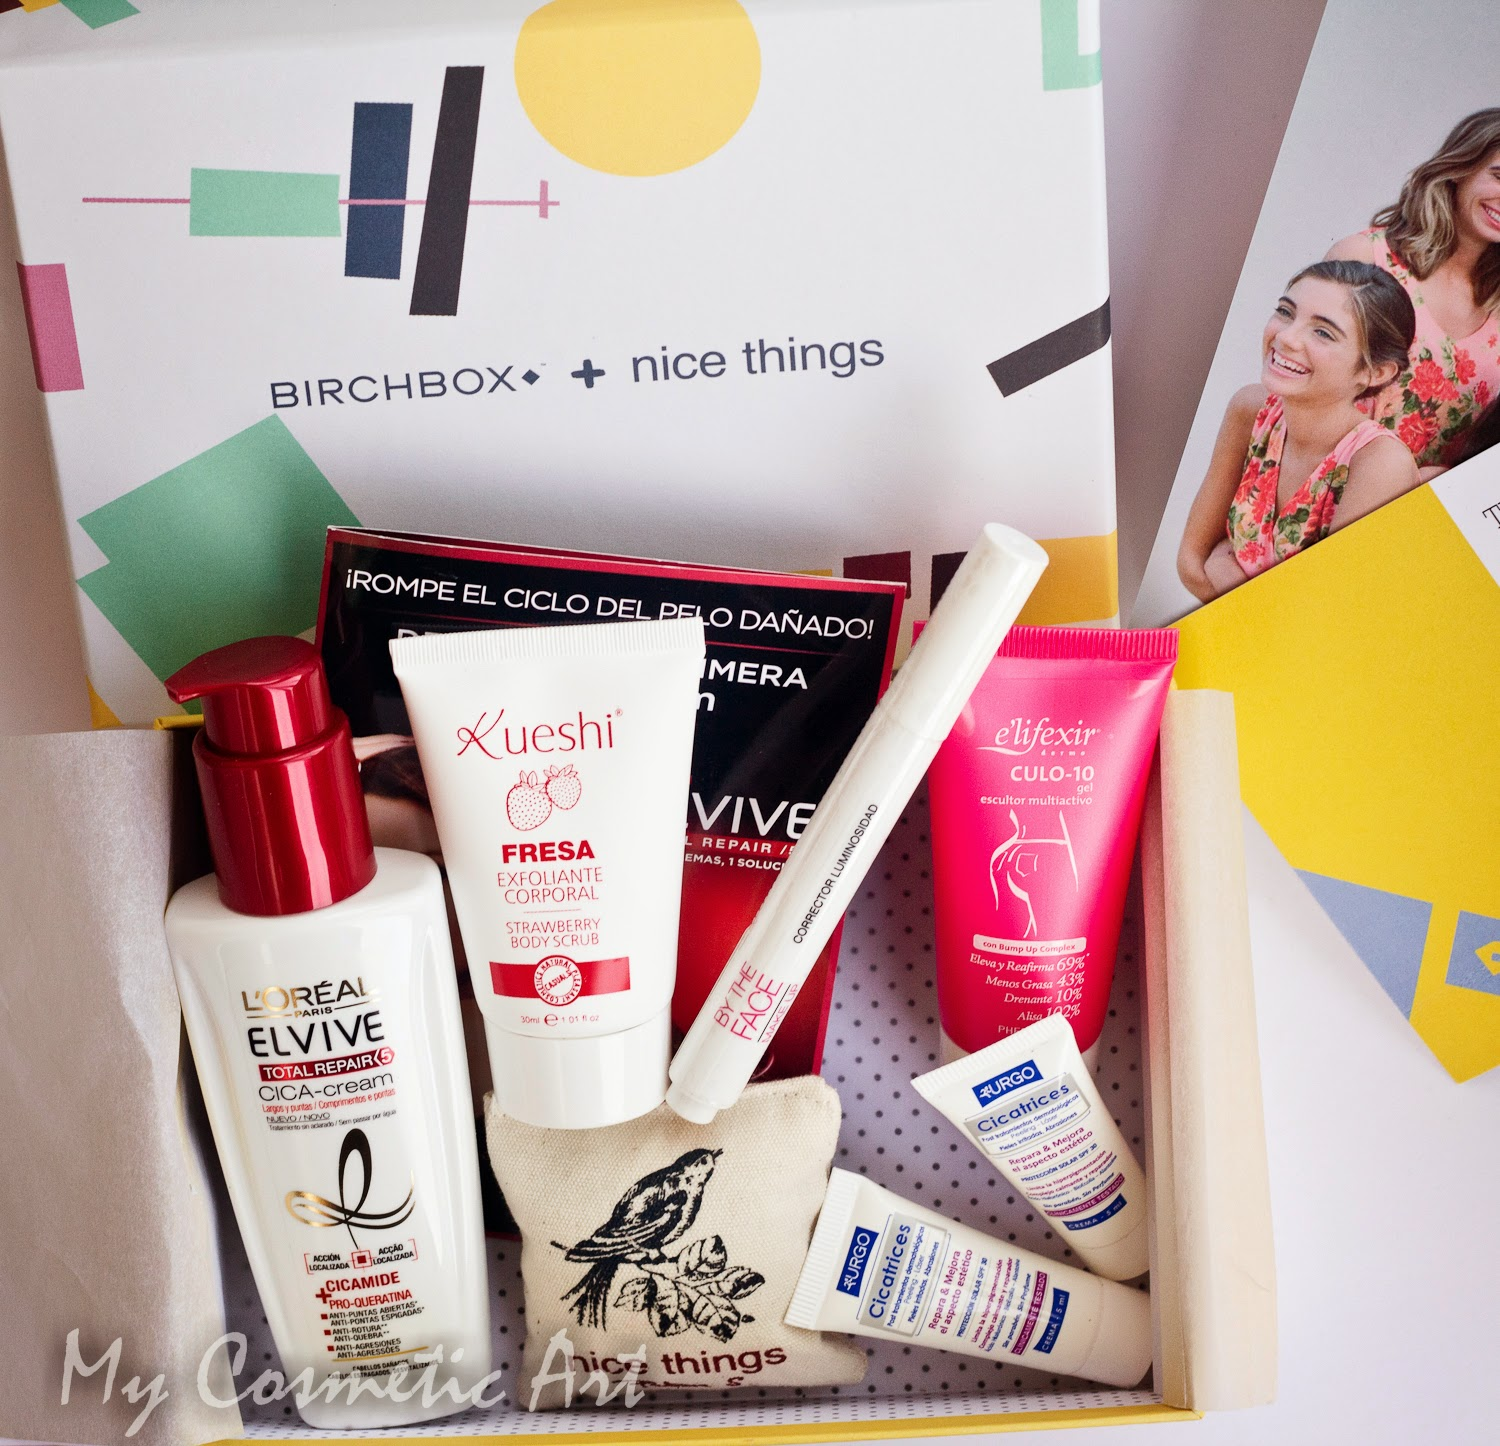 The Little Things, la Birchbox de Marzo de 2015